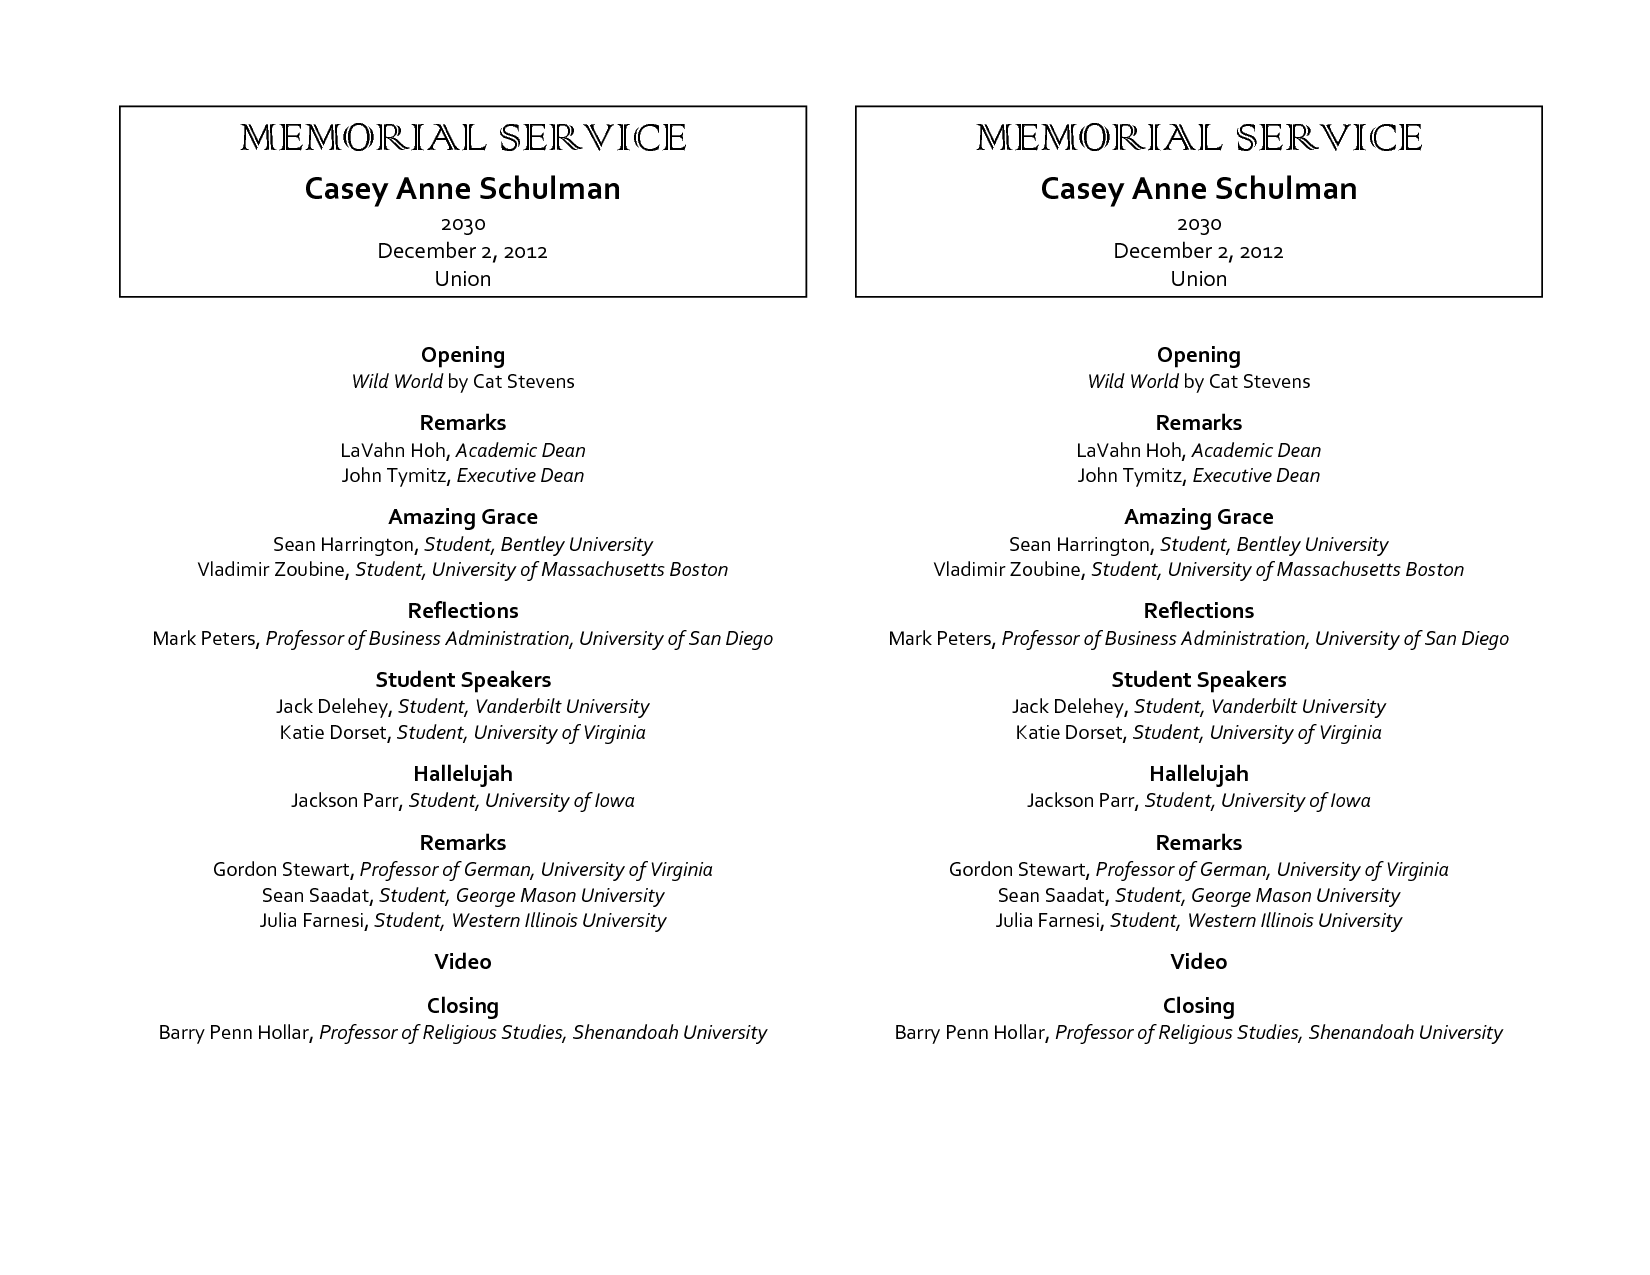 memorial service programs sample onboard memorial service program